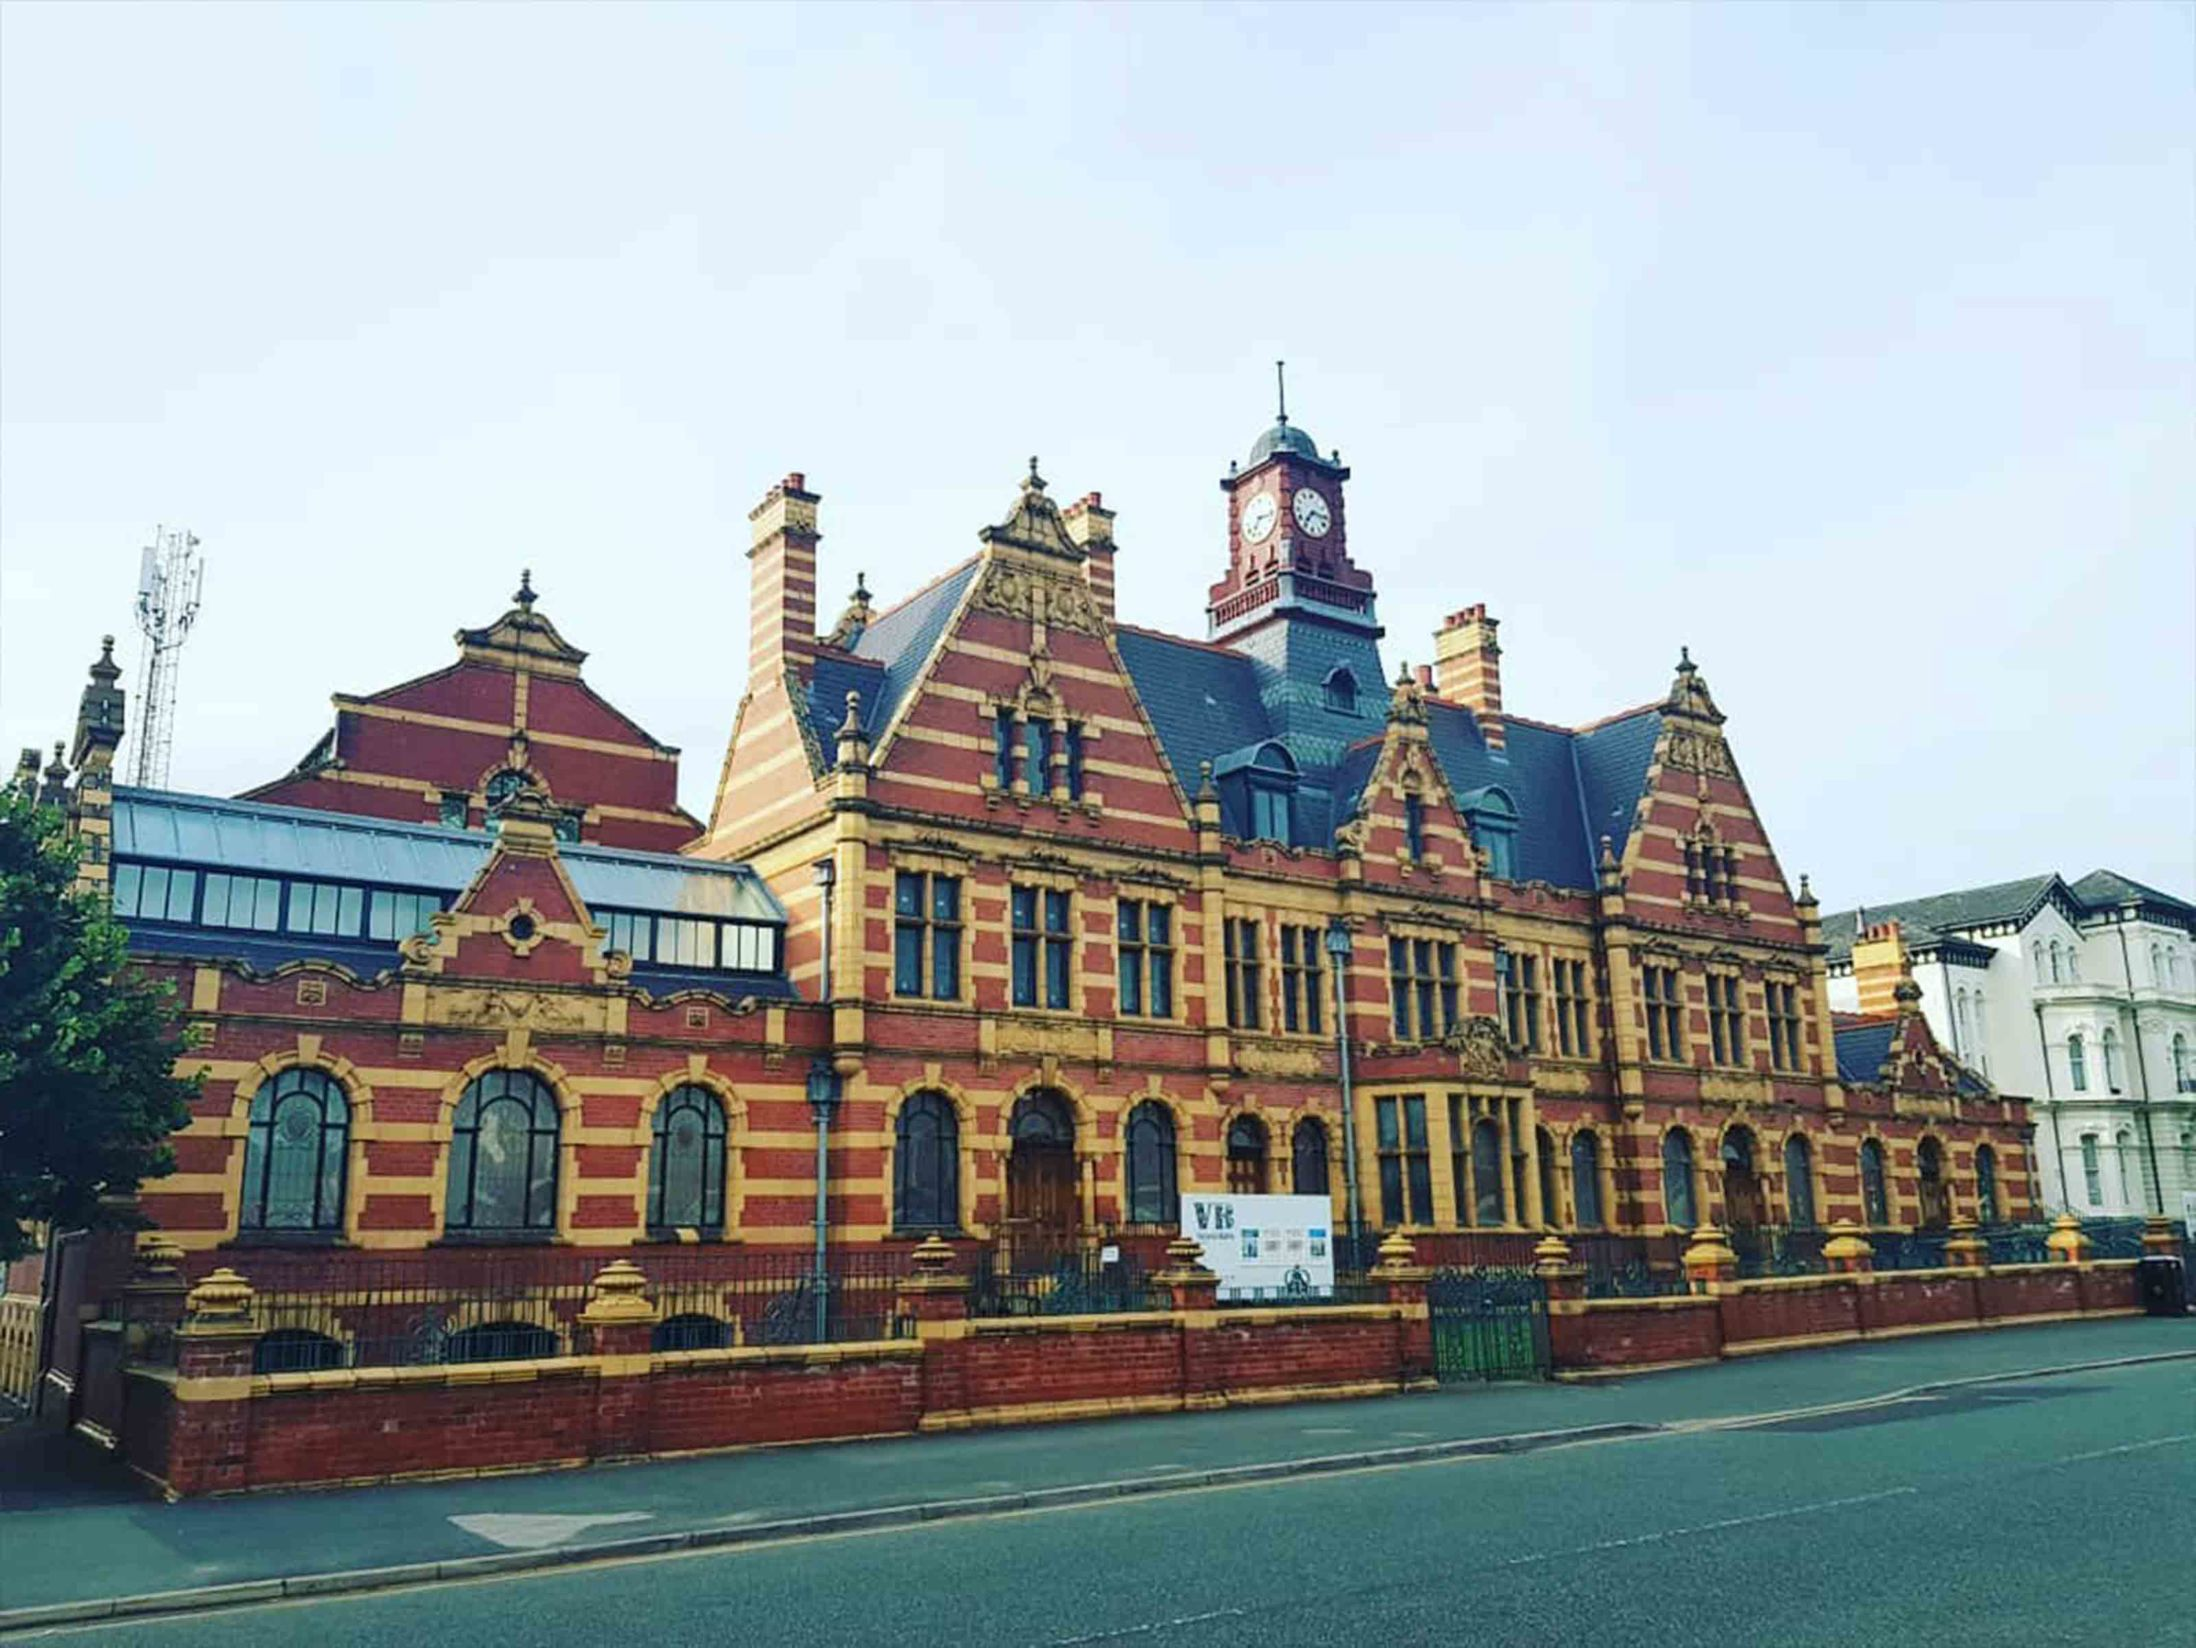 Things to Do in Manchester - Victoria Baths